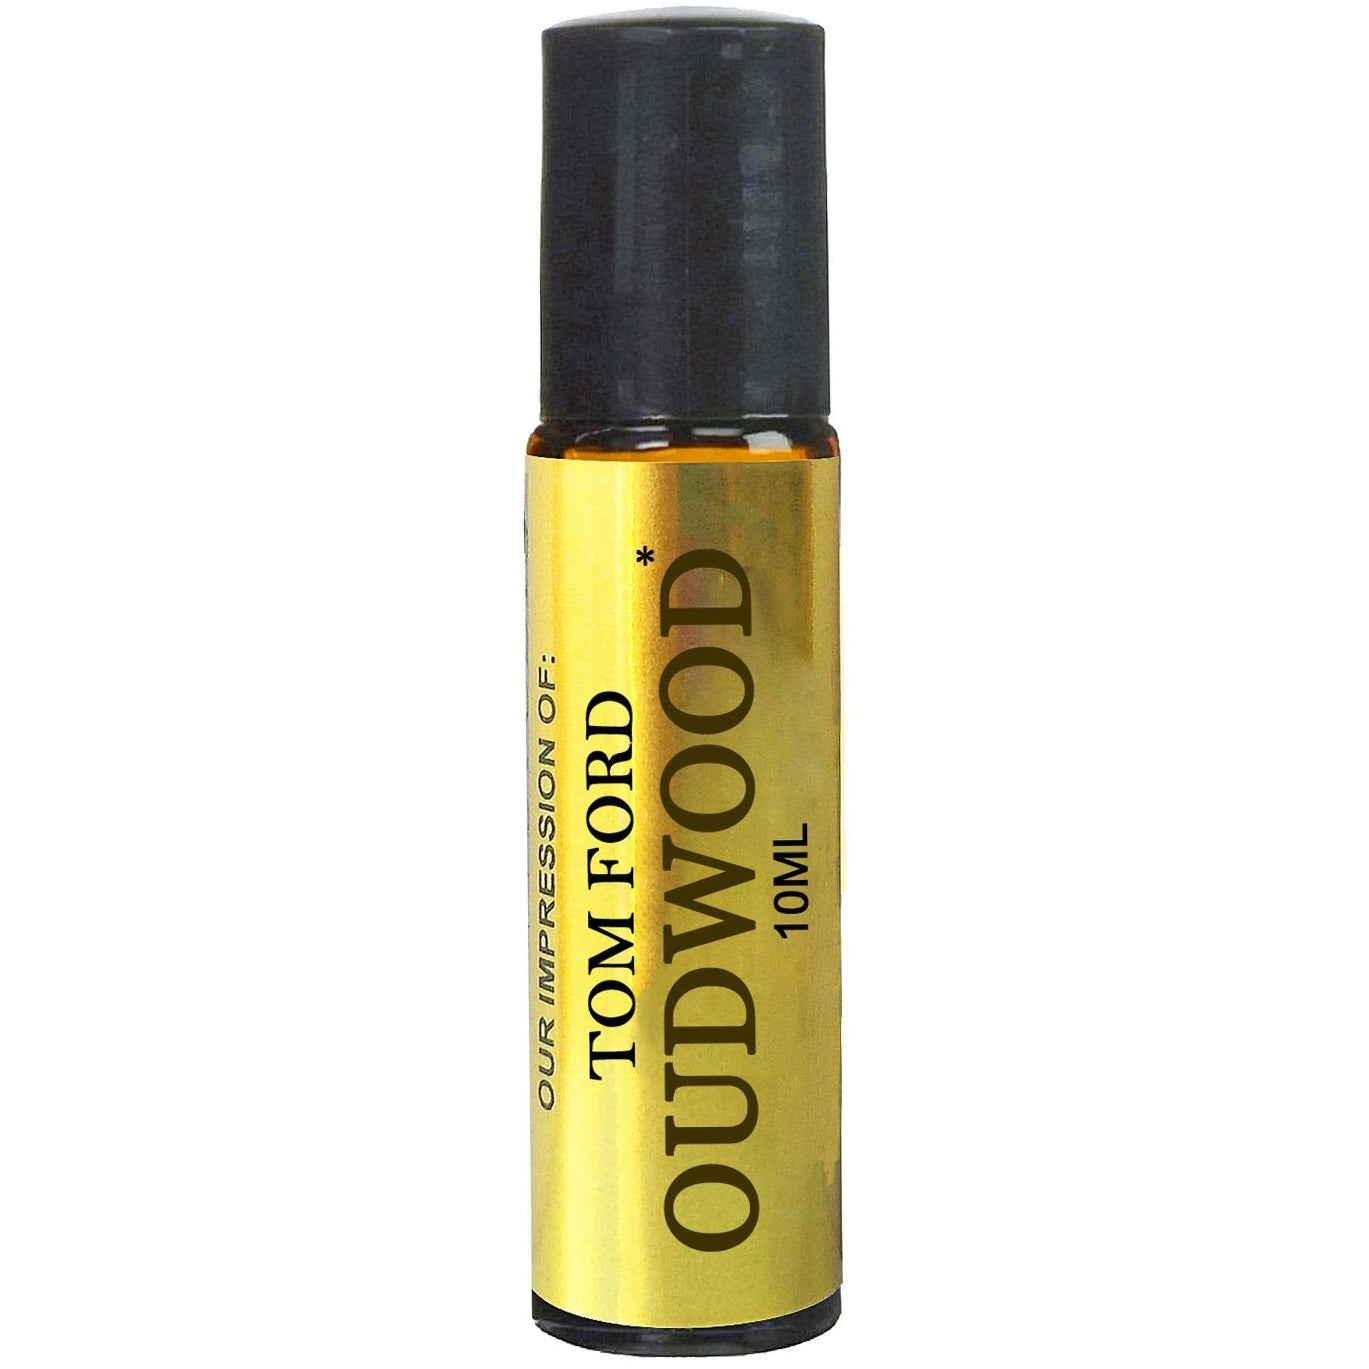 Oud Wood Oil Impression Of Tom Ford Oud Wood Cologne For Men With